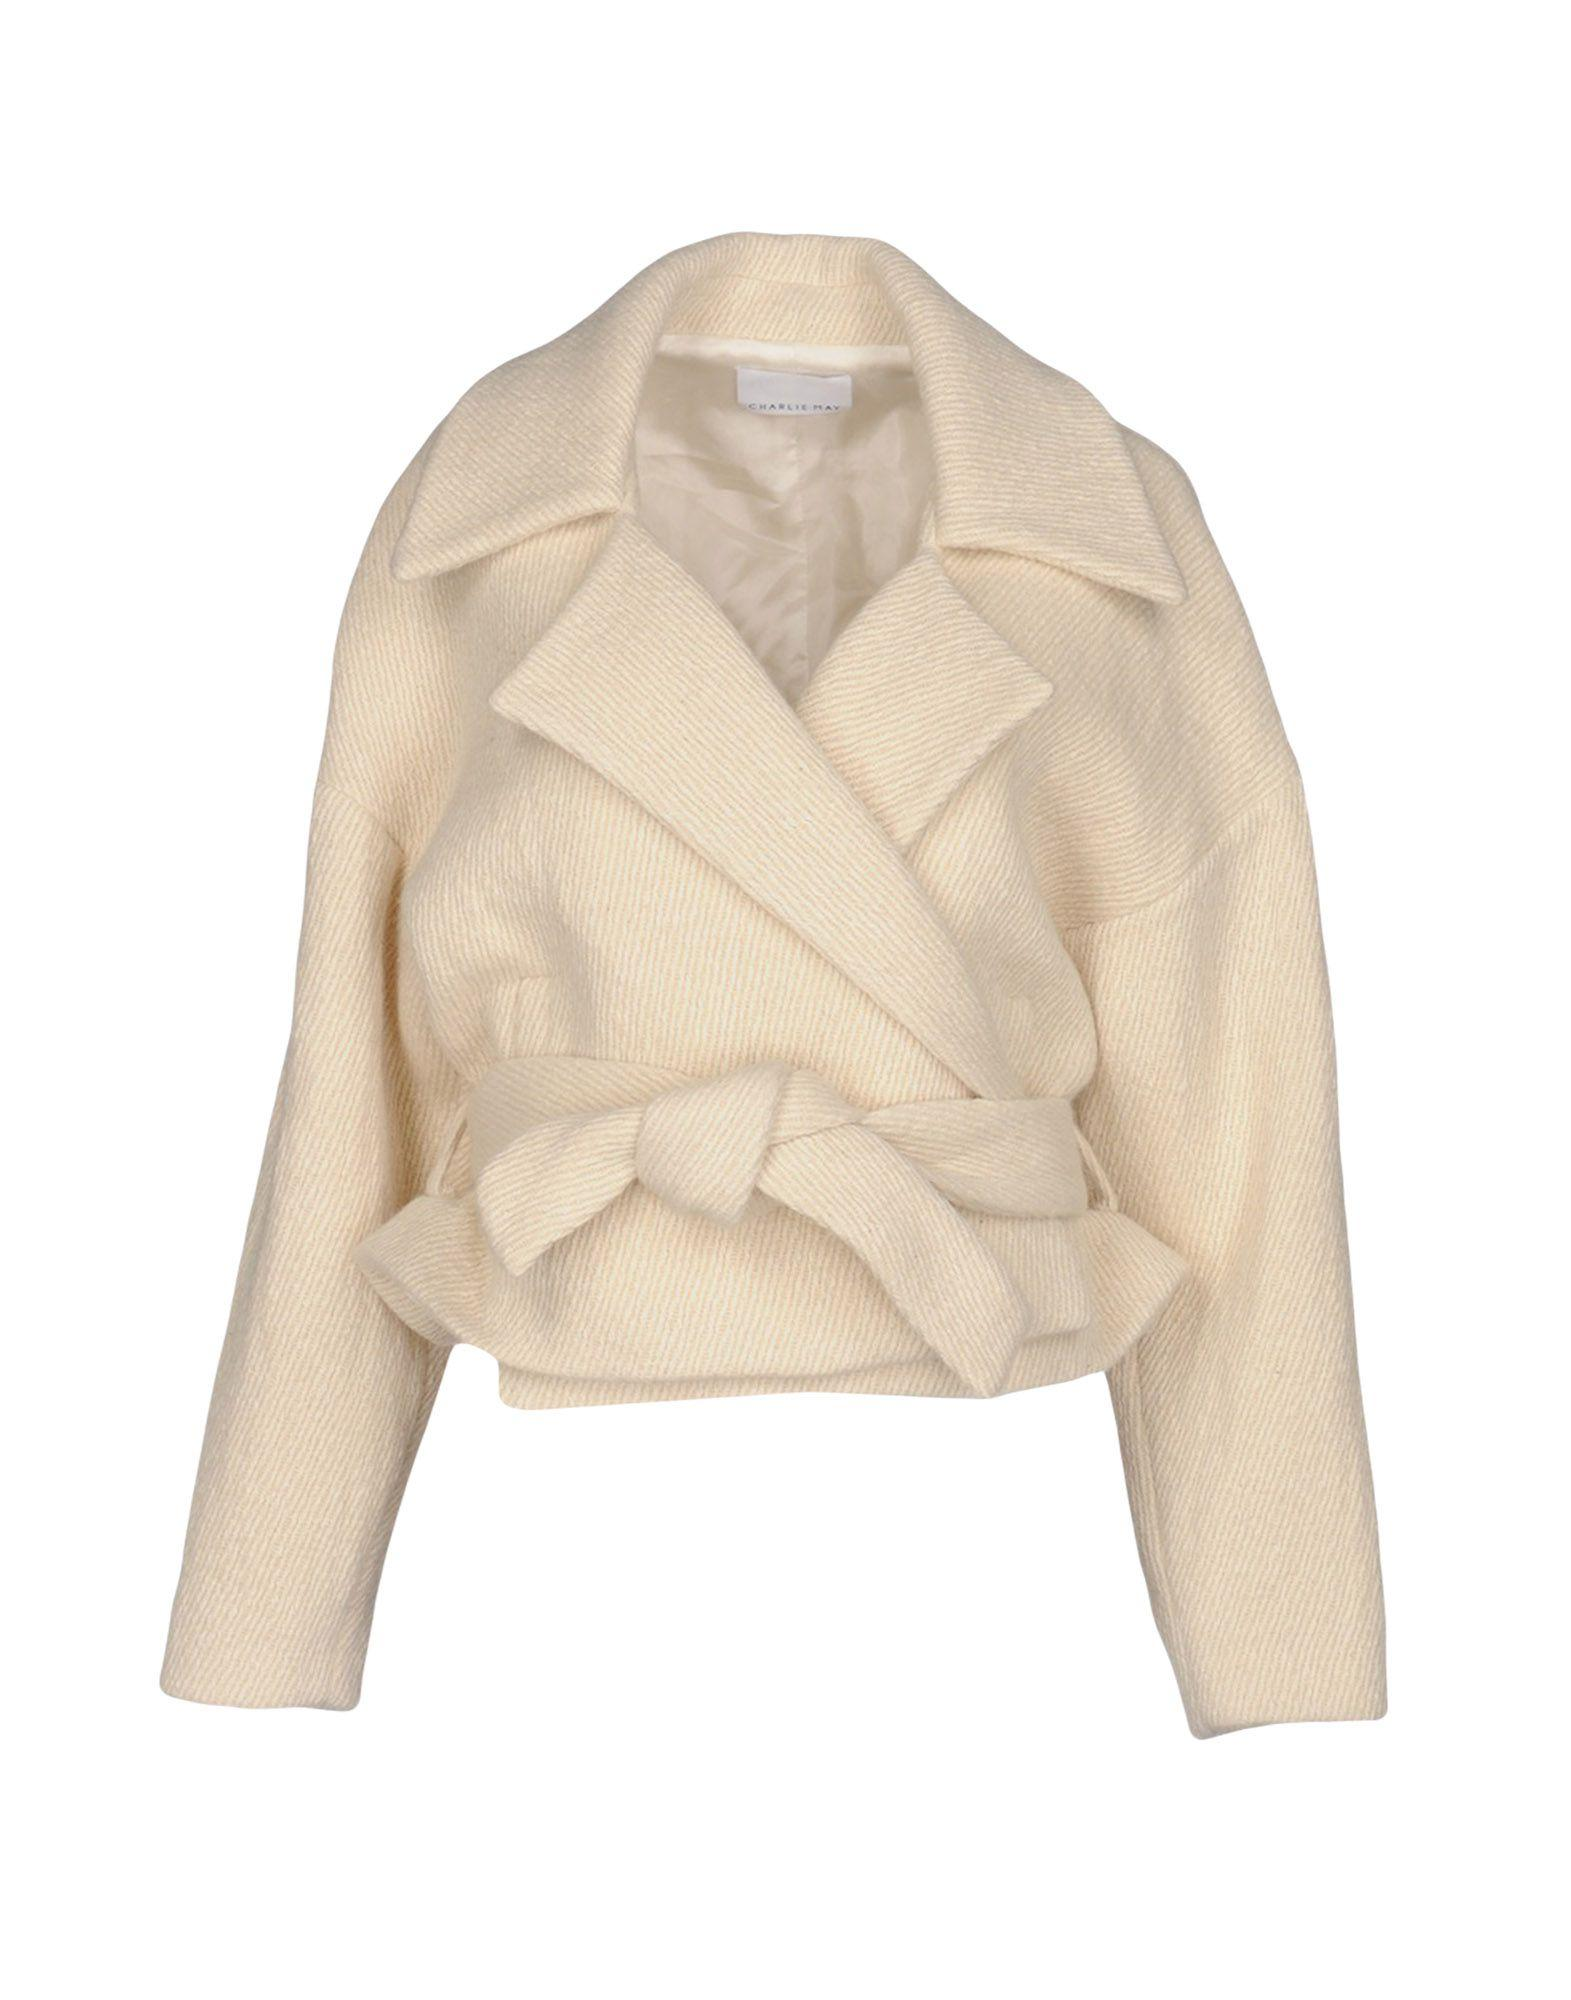 Charlie May Belted Coats In Ivory